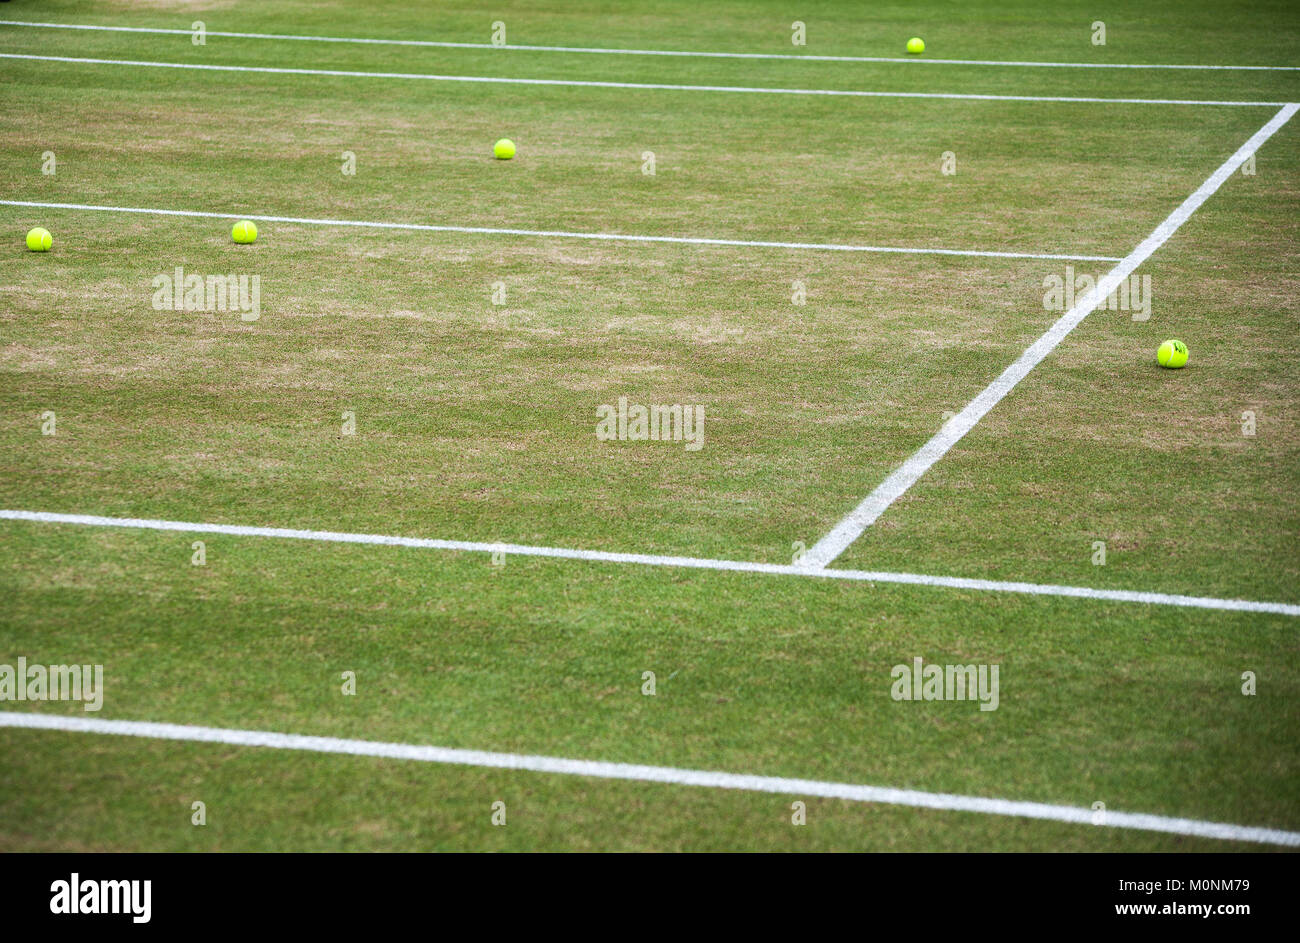 Chalk Lines Stock Photos & Chalk Lines Stock Images - Alamy